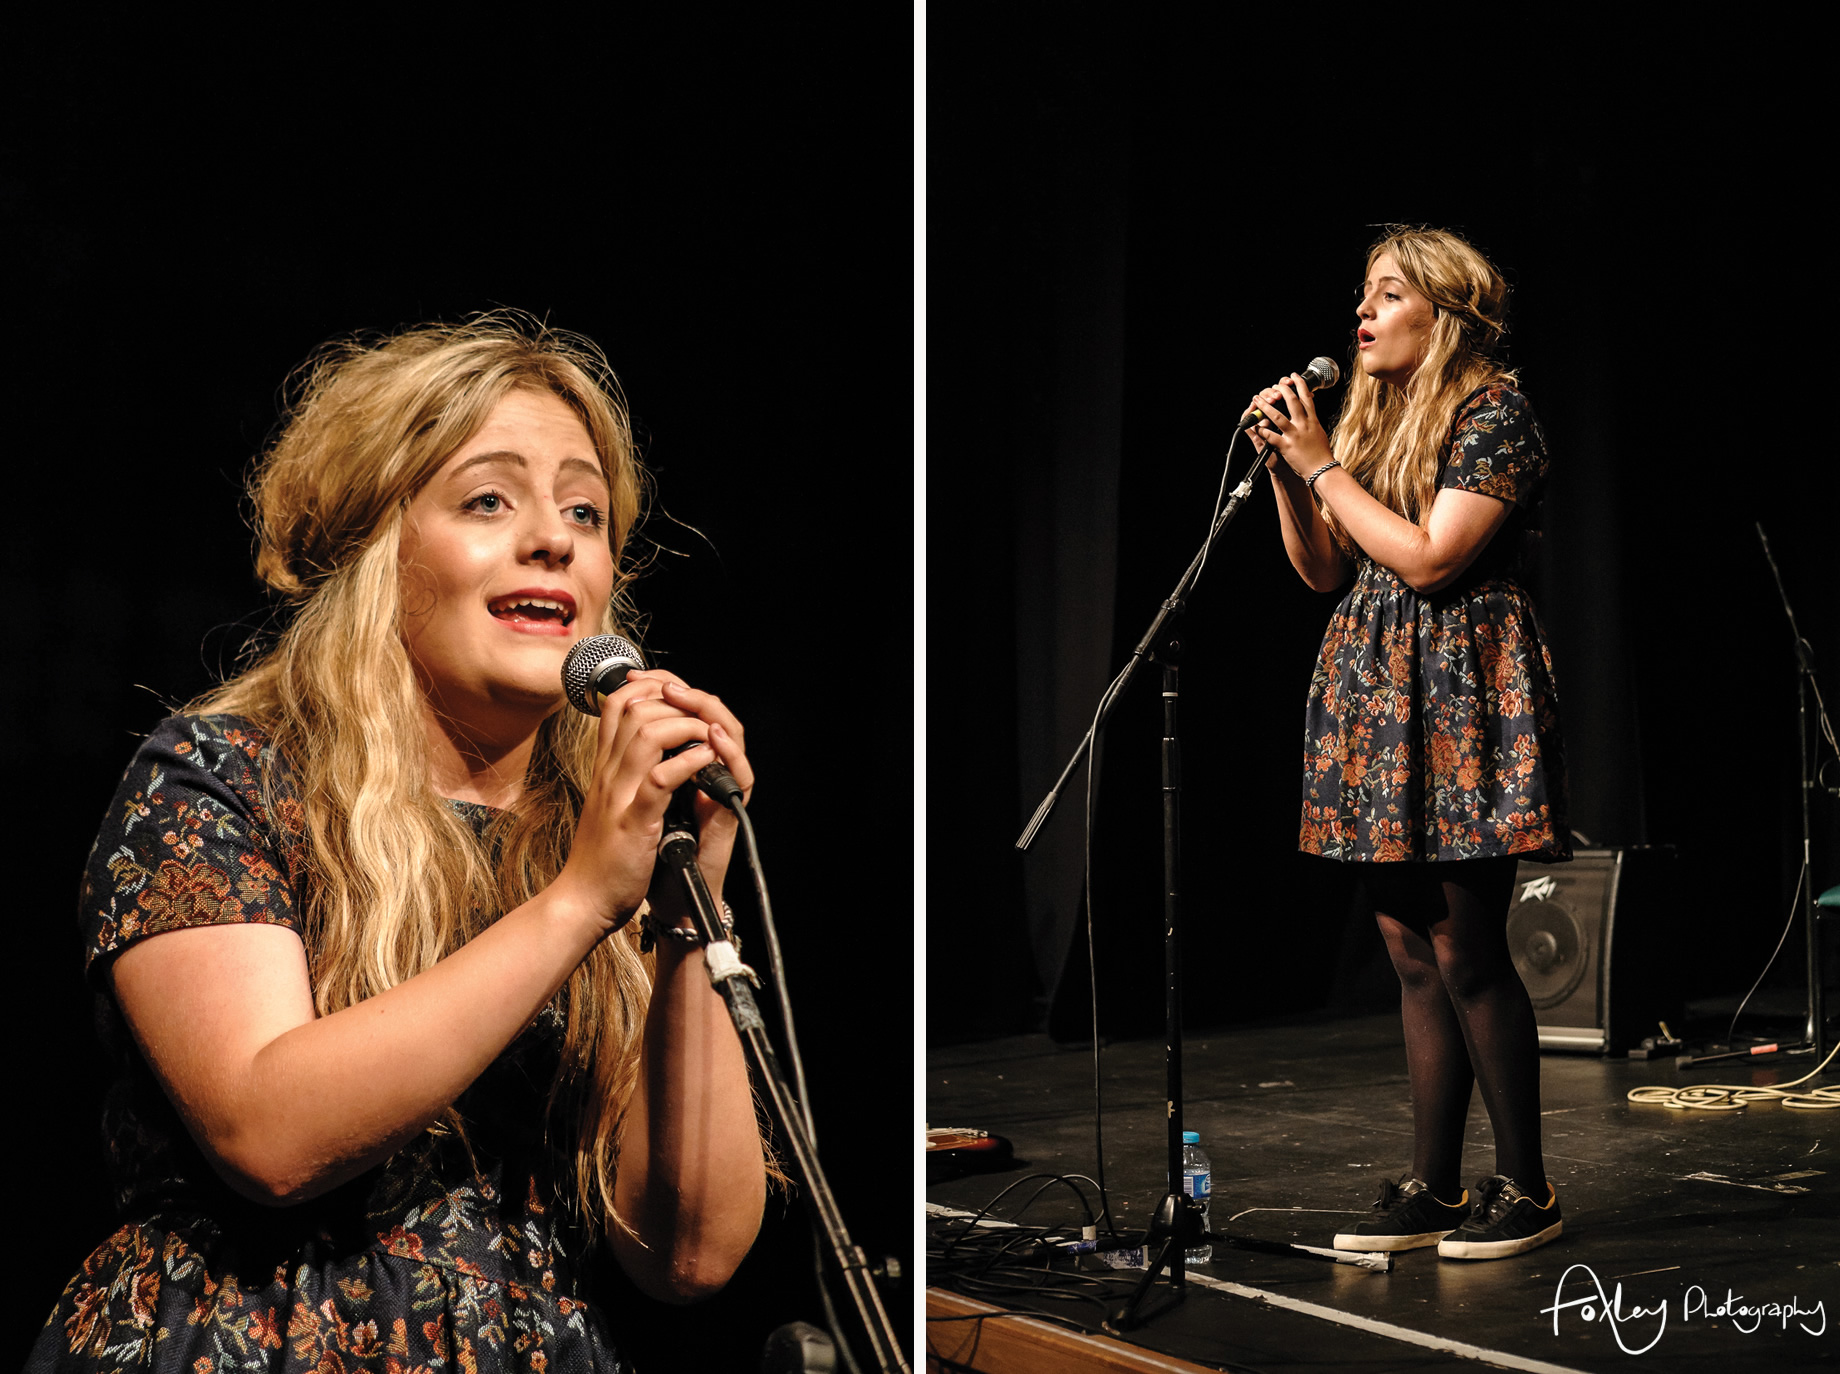 Jessica-Foxley-Stage-Auditions-2013-018